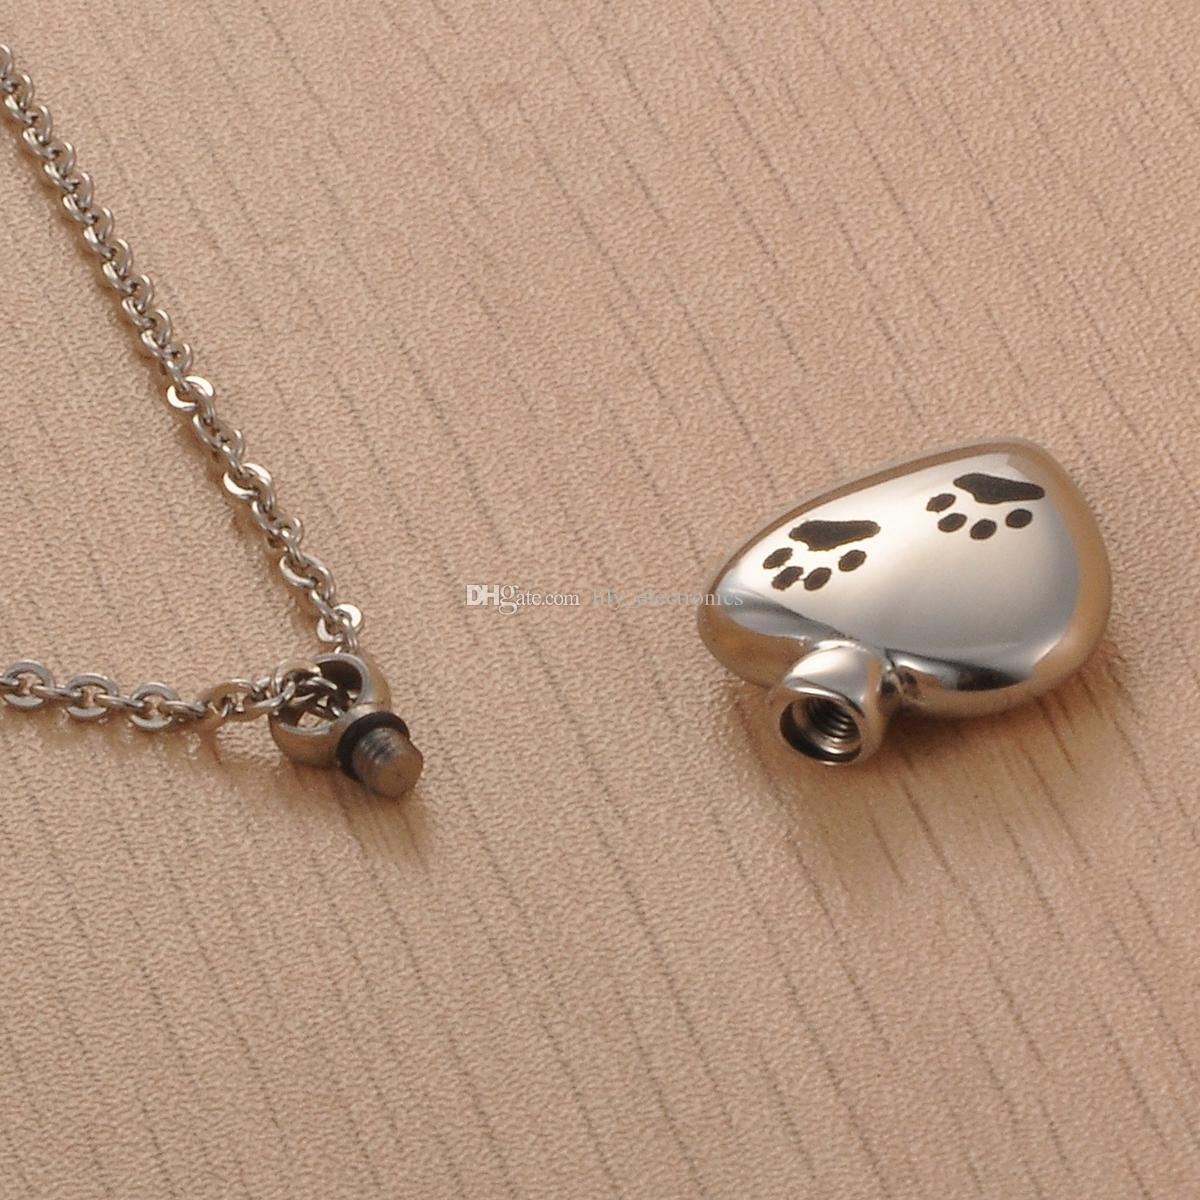 Lily Stainless Steel Pet Dog Paw Print Heart Cremation Urn Jewelry Necklace Memorial Pendant Ashes with gift bag and chain